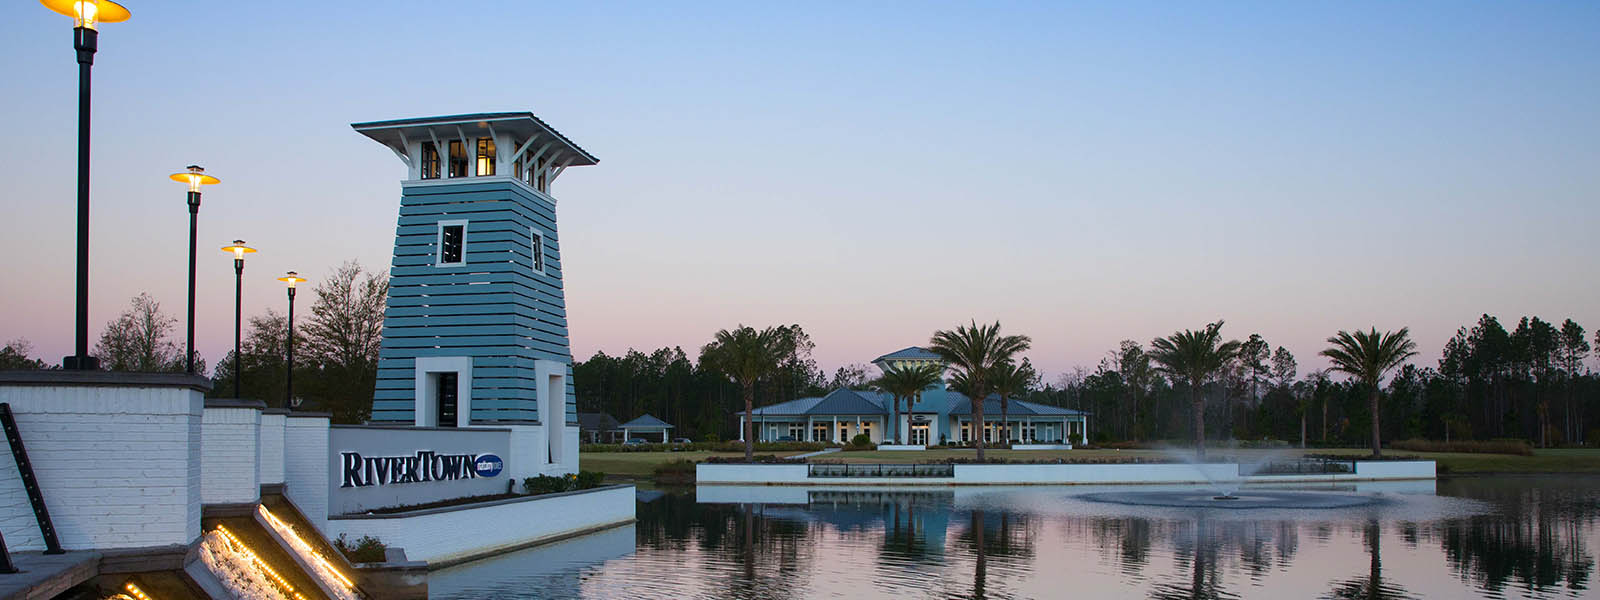 55+ Community near Jacksonville FL | WaterSong at RiverTown | Active